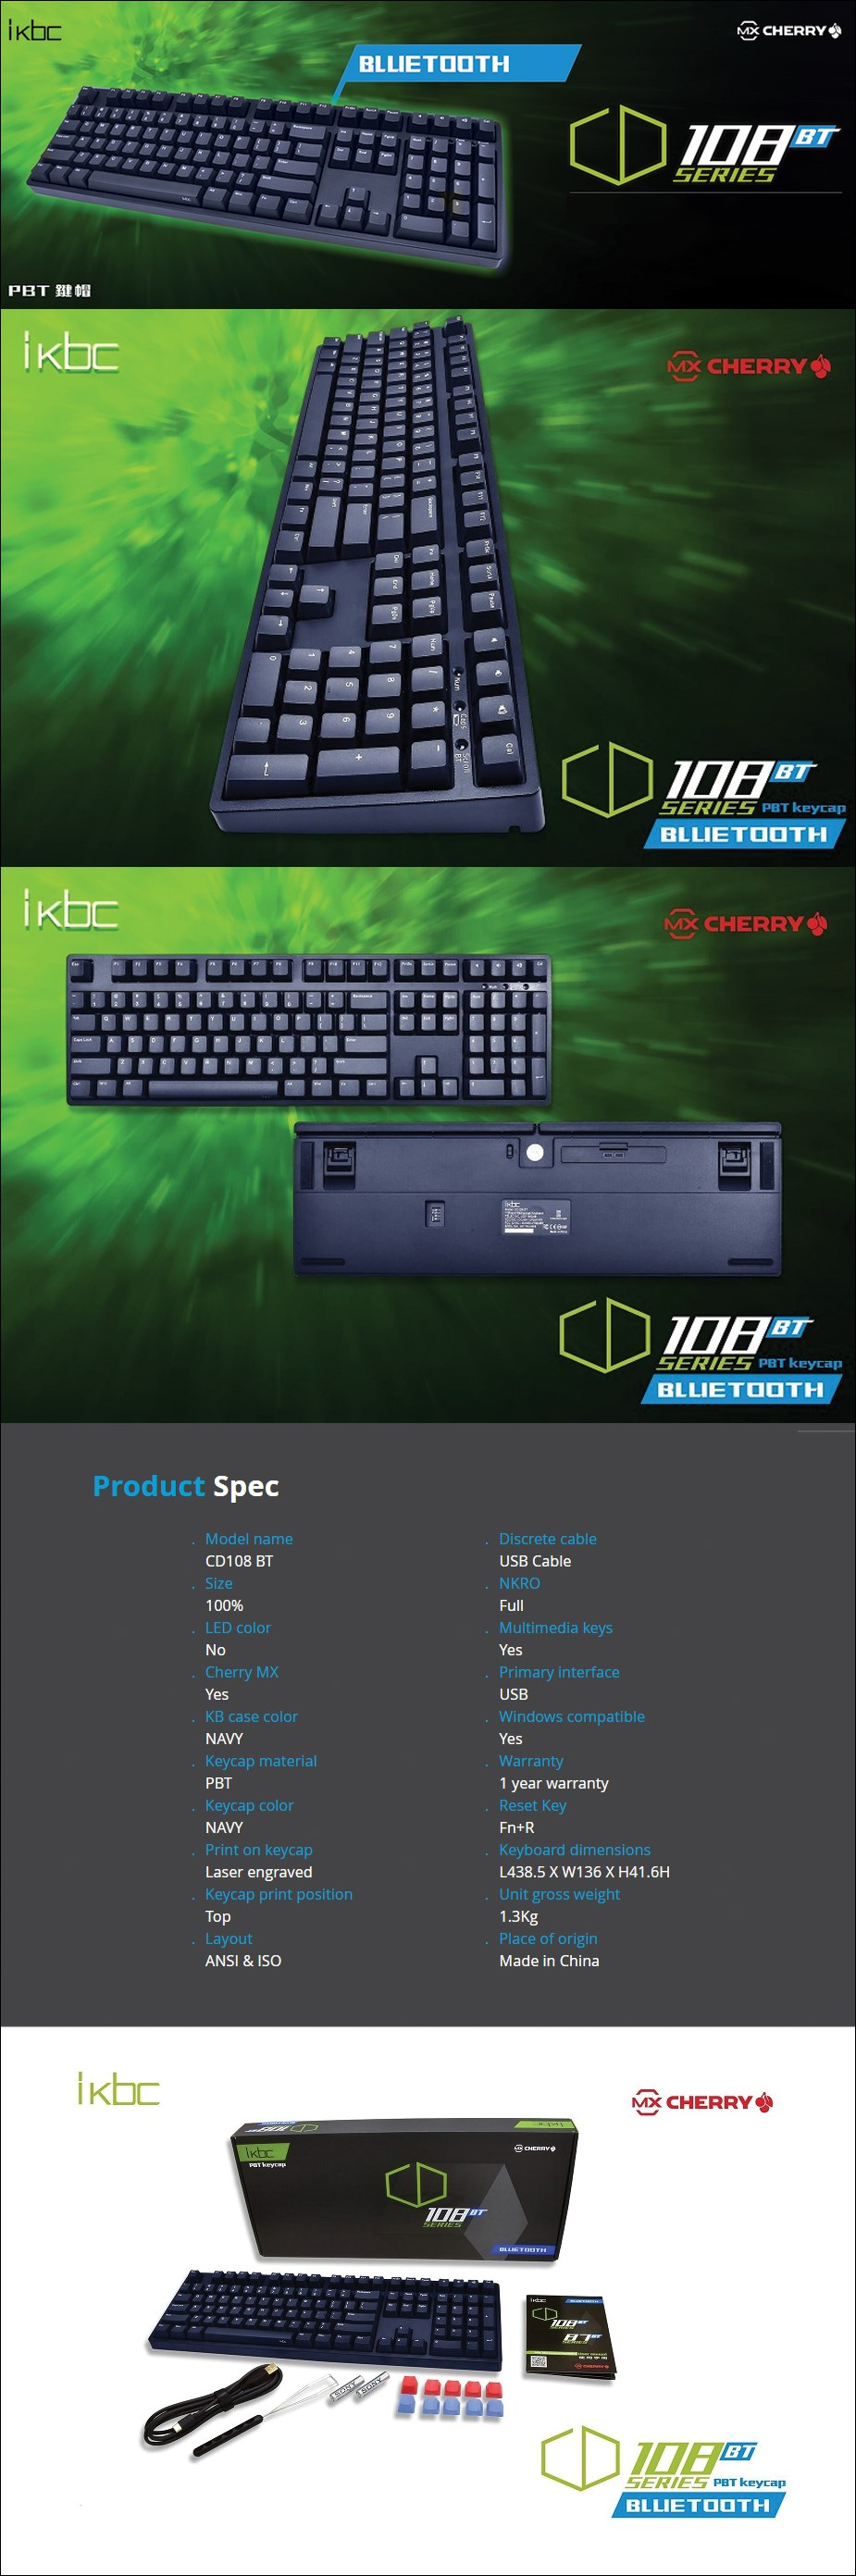 iKBC CD108 BT Navy Mechanical Gaming Keyboard - Cherry MX Red - Desktop Overview 1